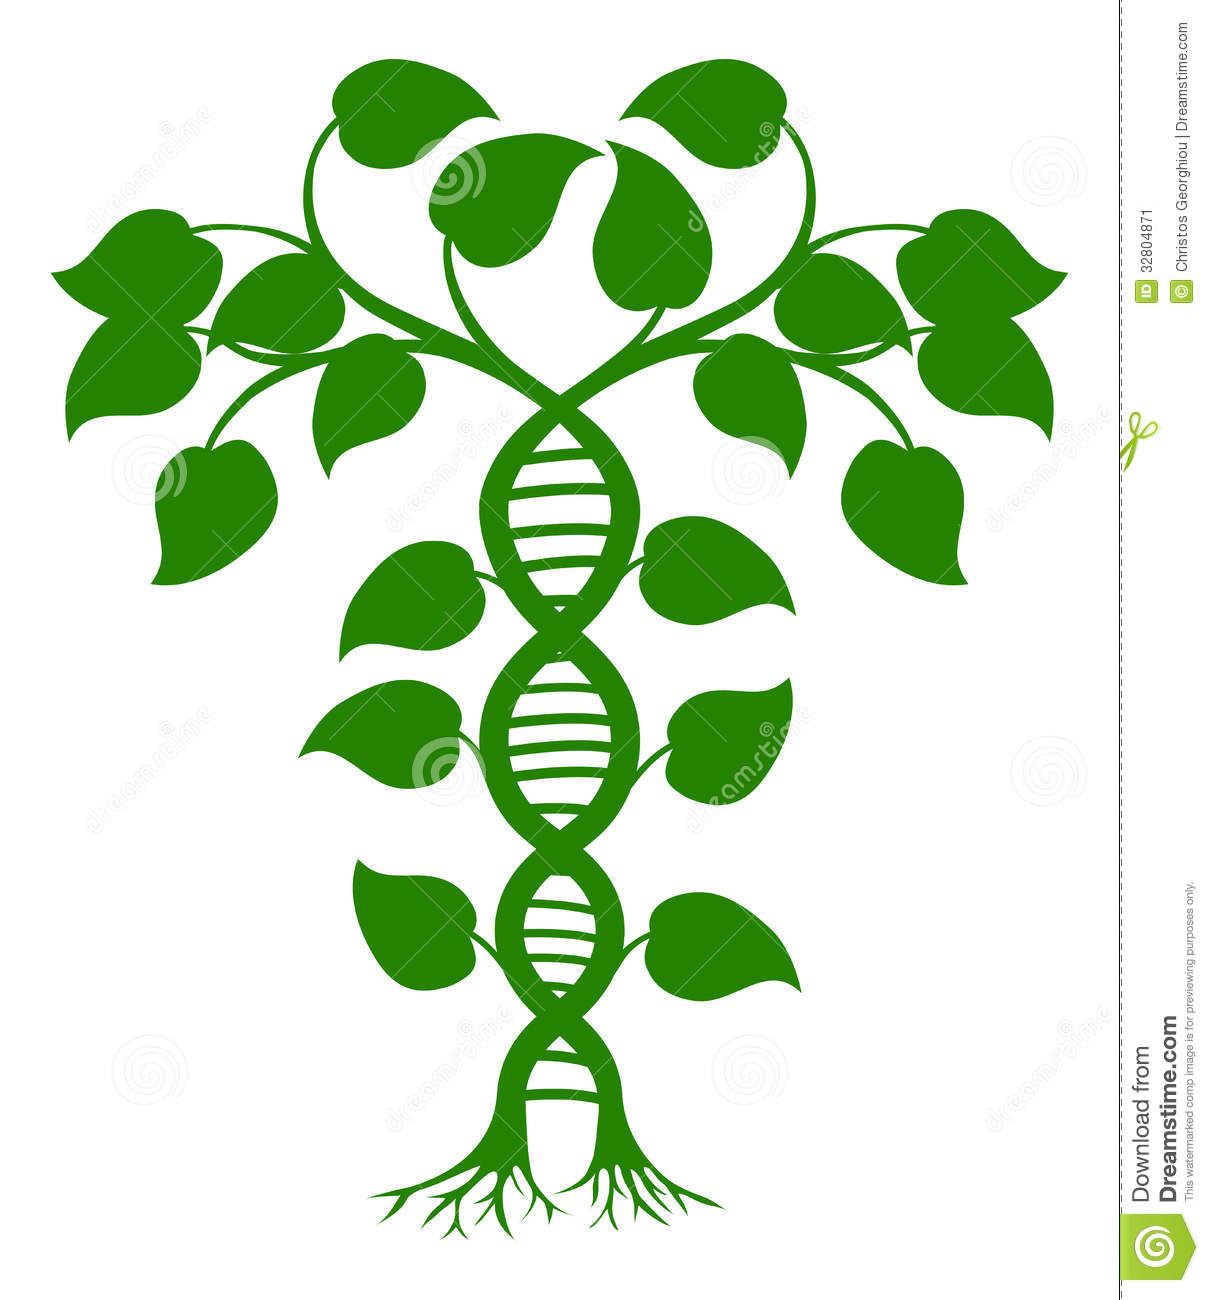 DNA Nature Plant Stock Image.